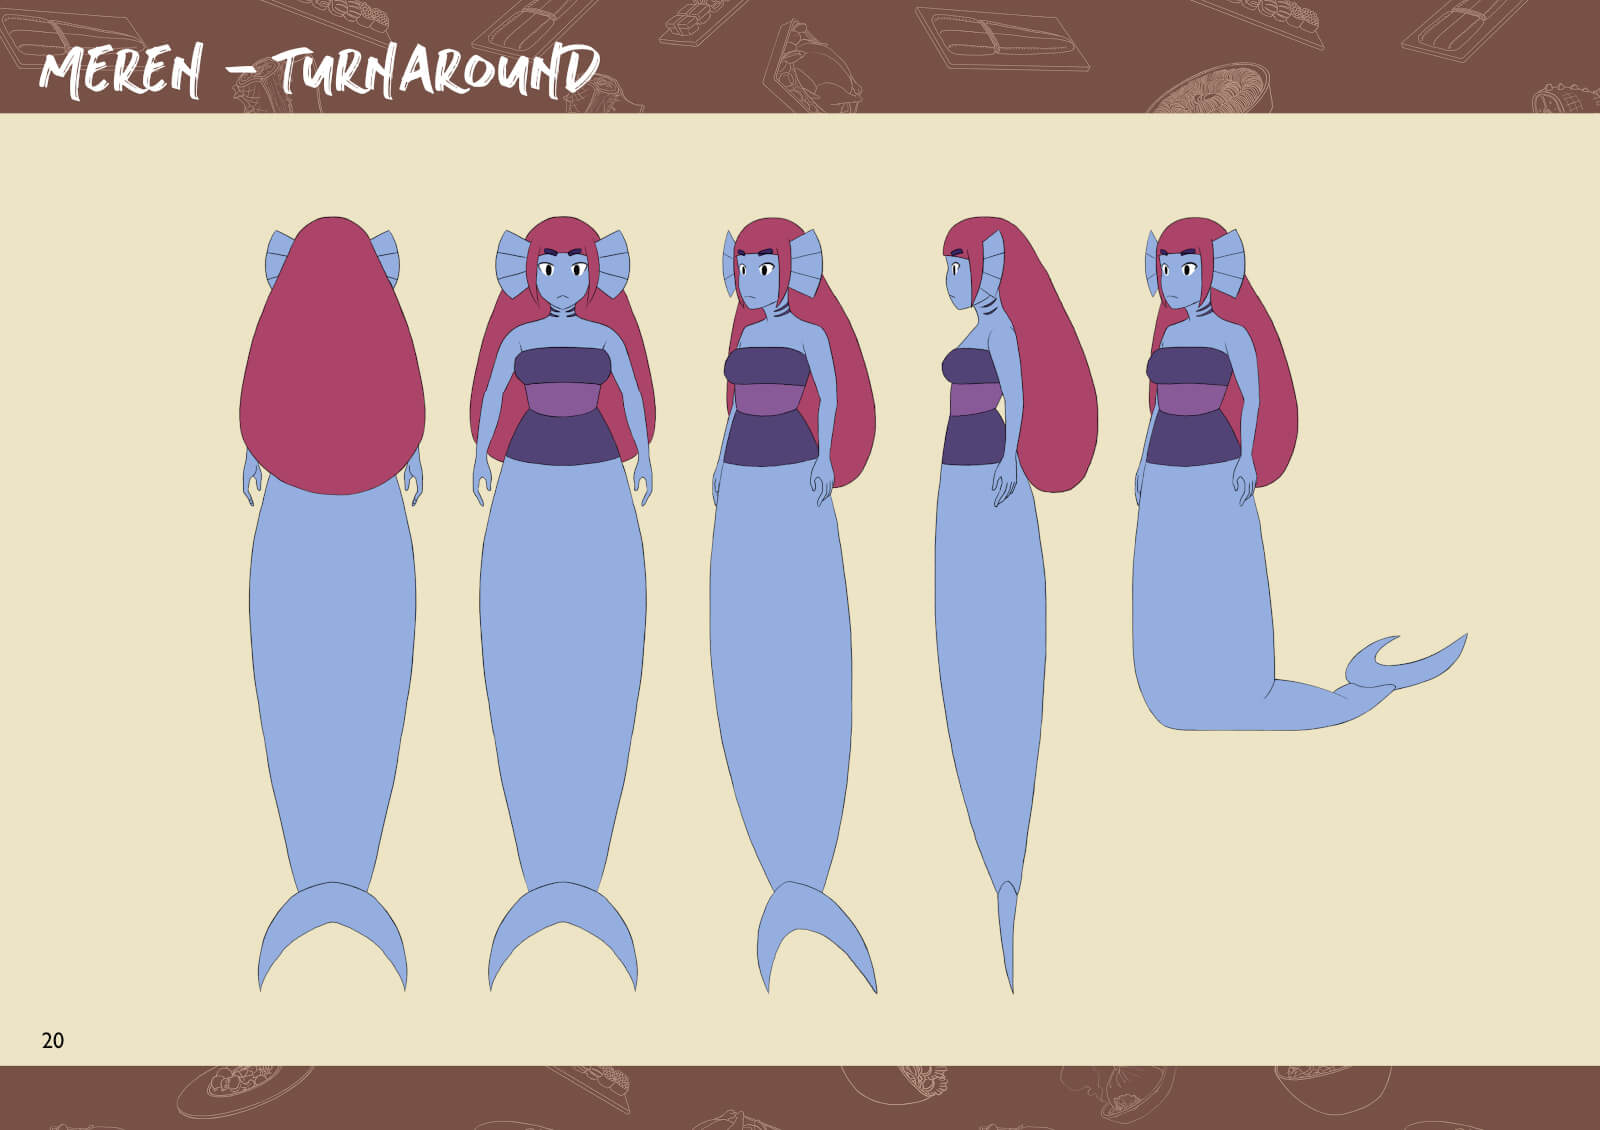 Mermaid character from multiple angles